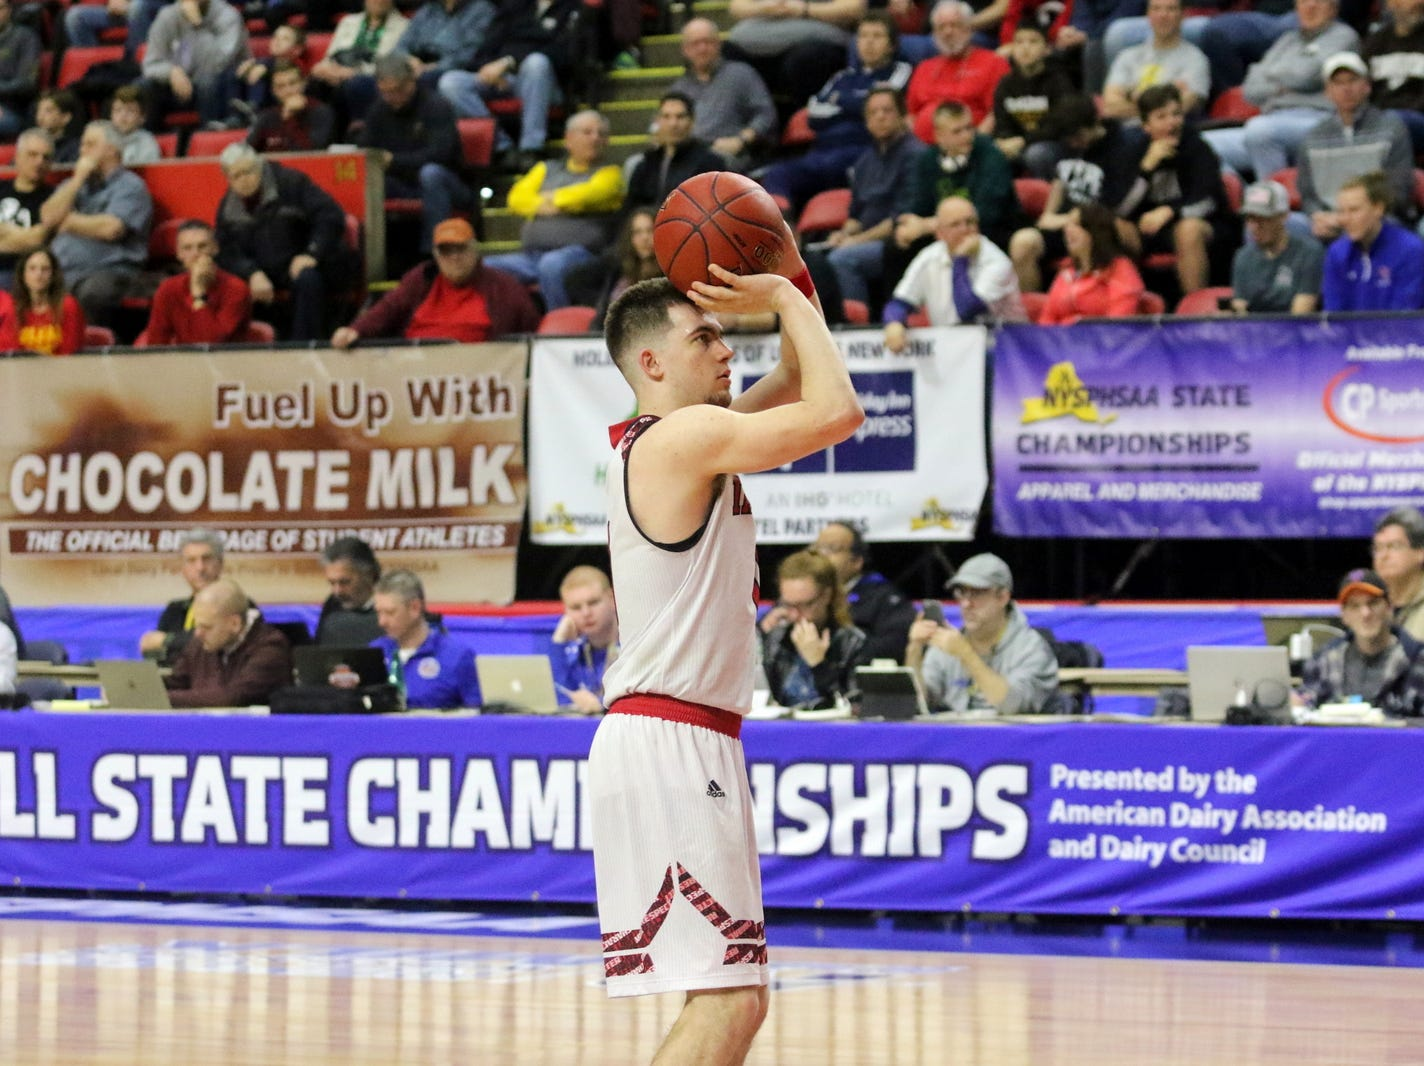 Joseph Girard III of Glens Falls takes a foul shot during an 83-63 win over Olean in a Class B boys basketball state semifinal March 15, 2019 at Floyd L. Maines Veterans Memorial Arena in Binghamton.